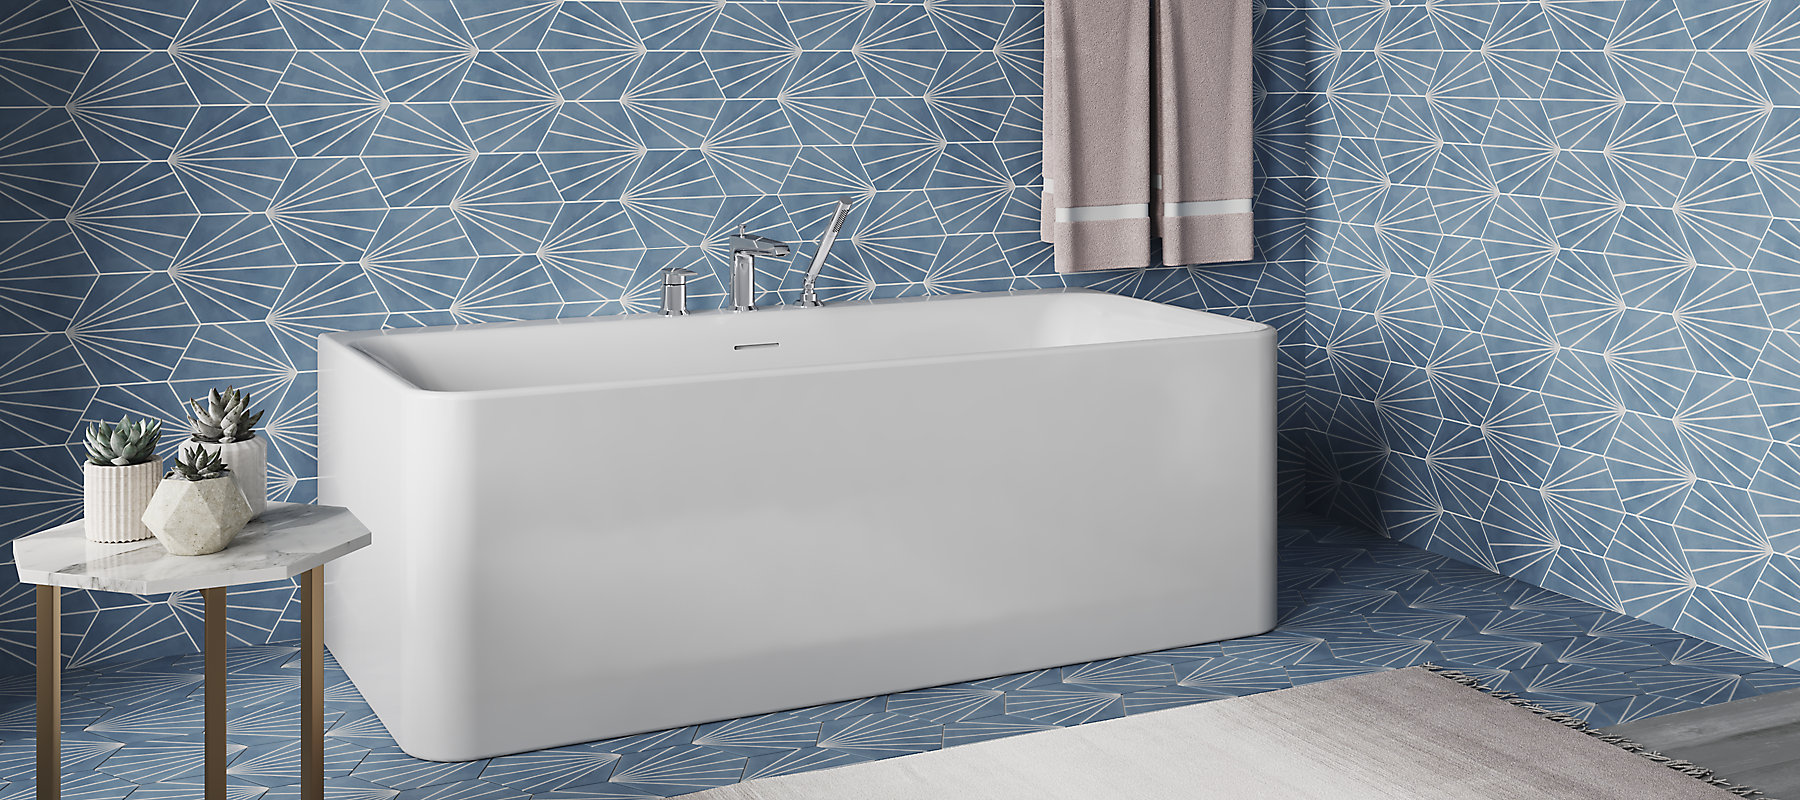 Freestanding baths combine elegant luxury with exceptional durability